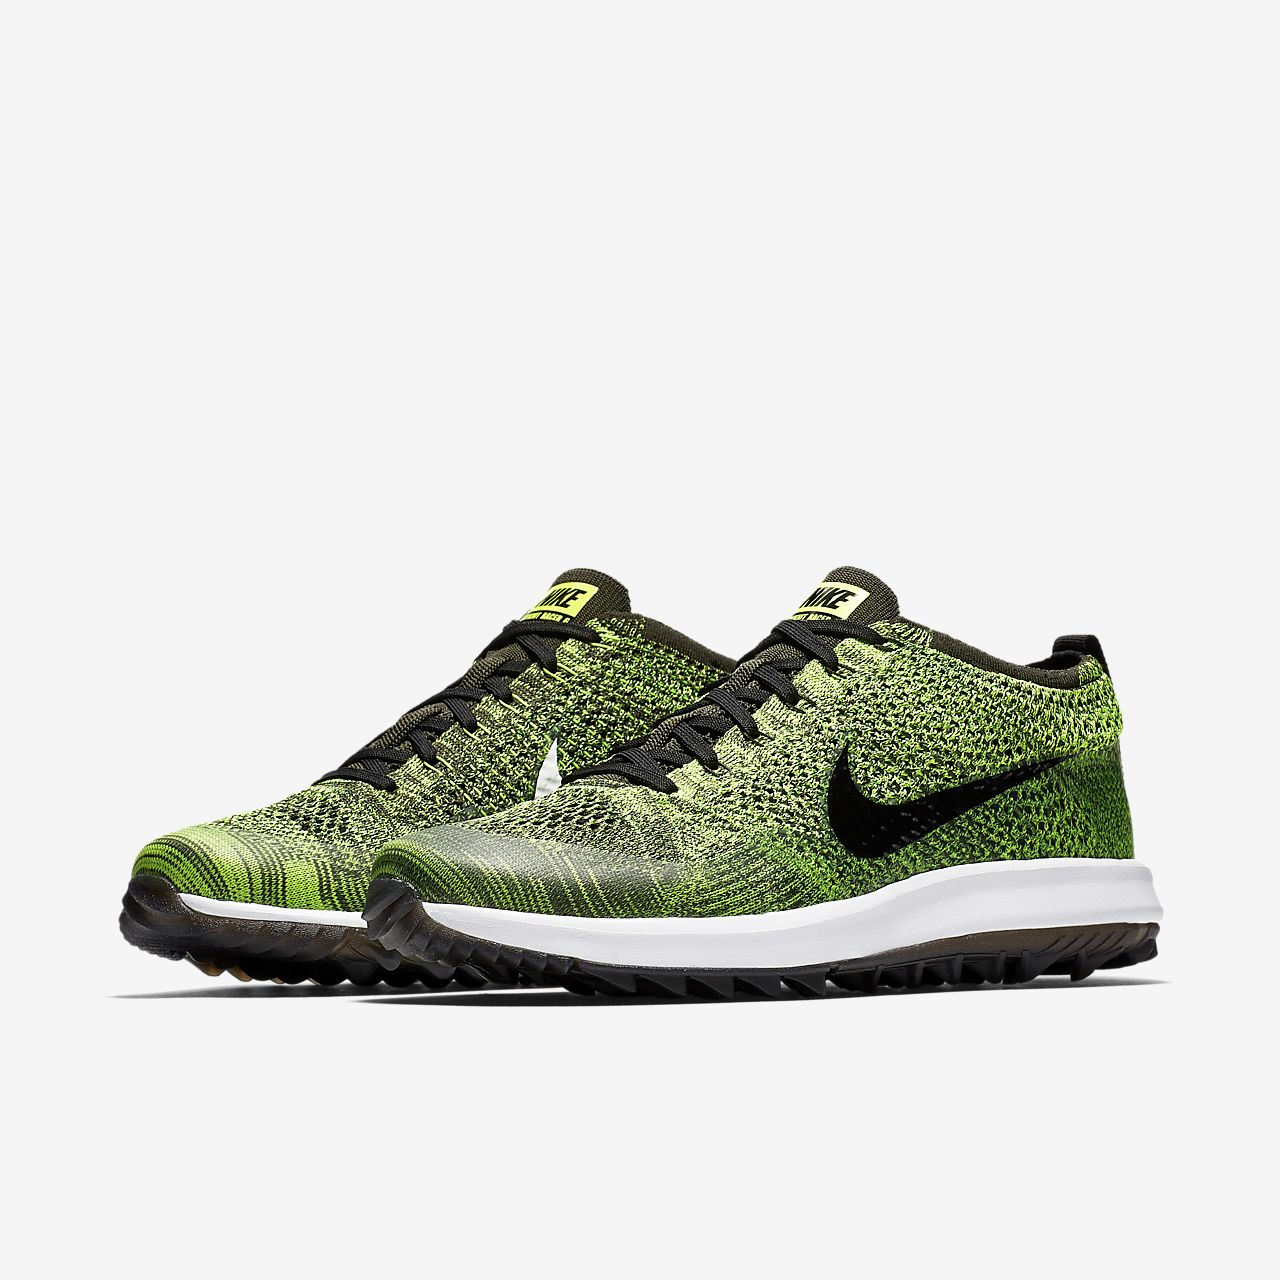 4e399f041400 Low Resolution Nike Flyknit Racer G Men s Golf Shoe Nike Flyknit Racer G  Men s Golf Shoe